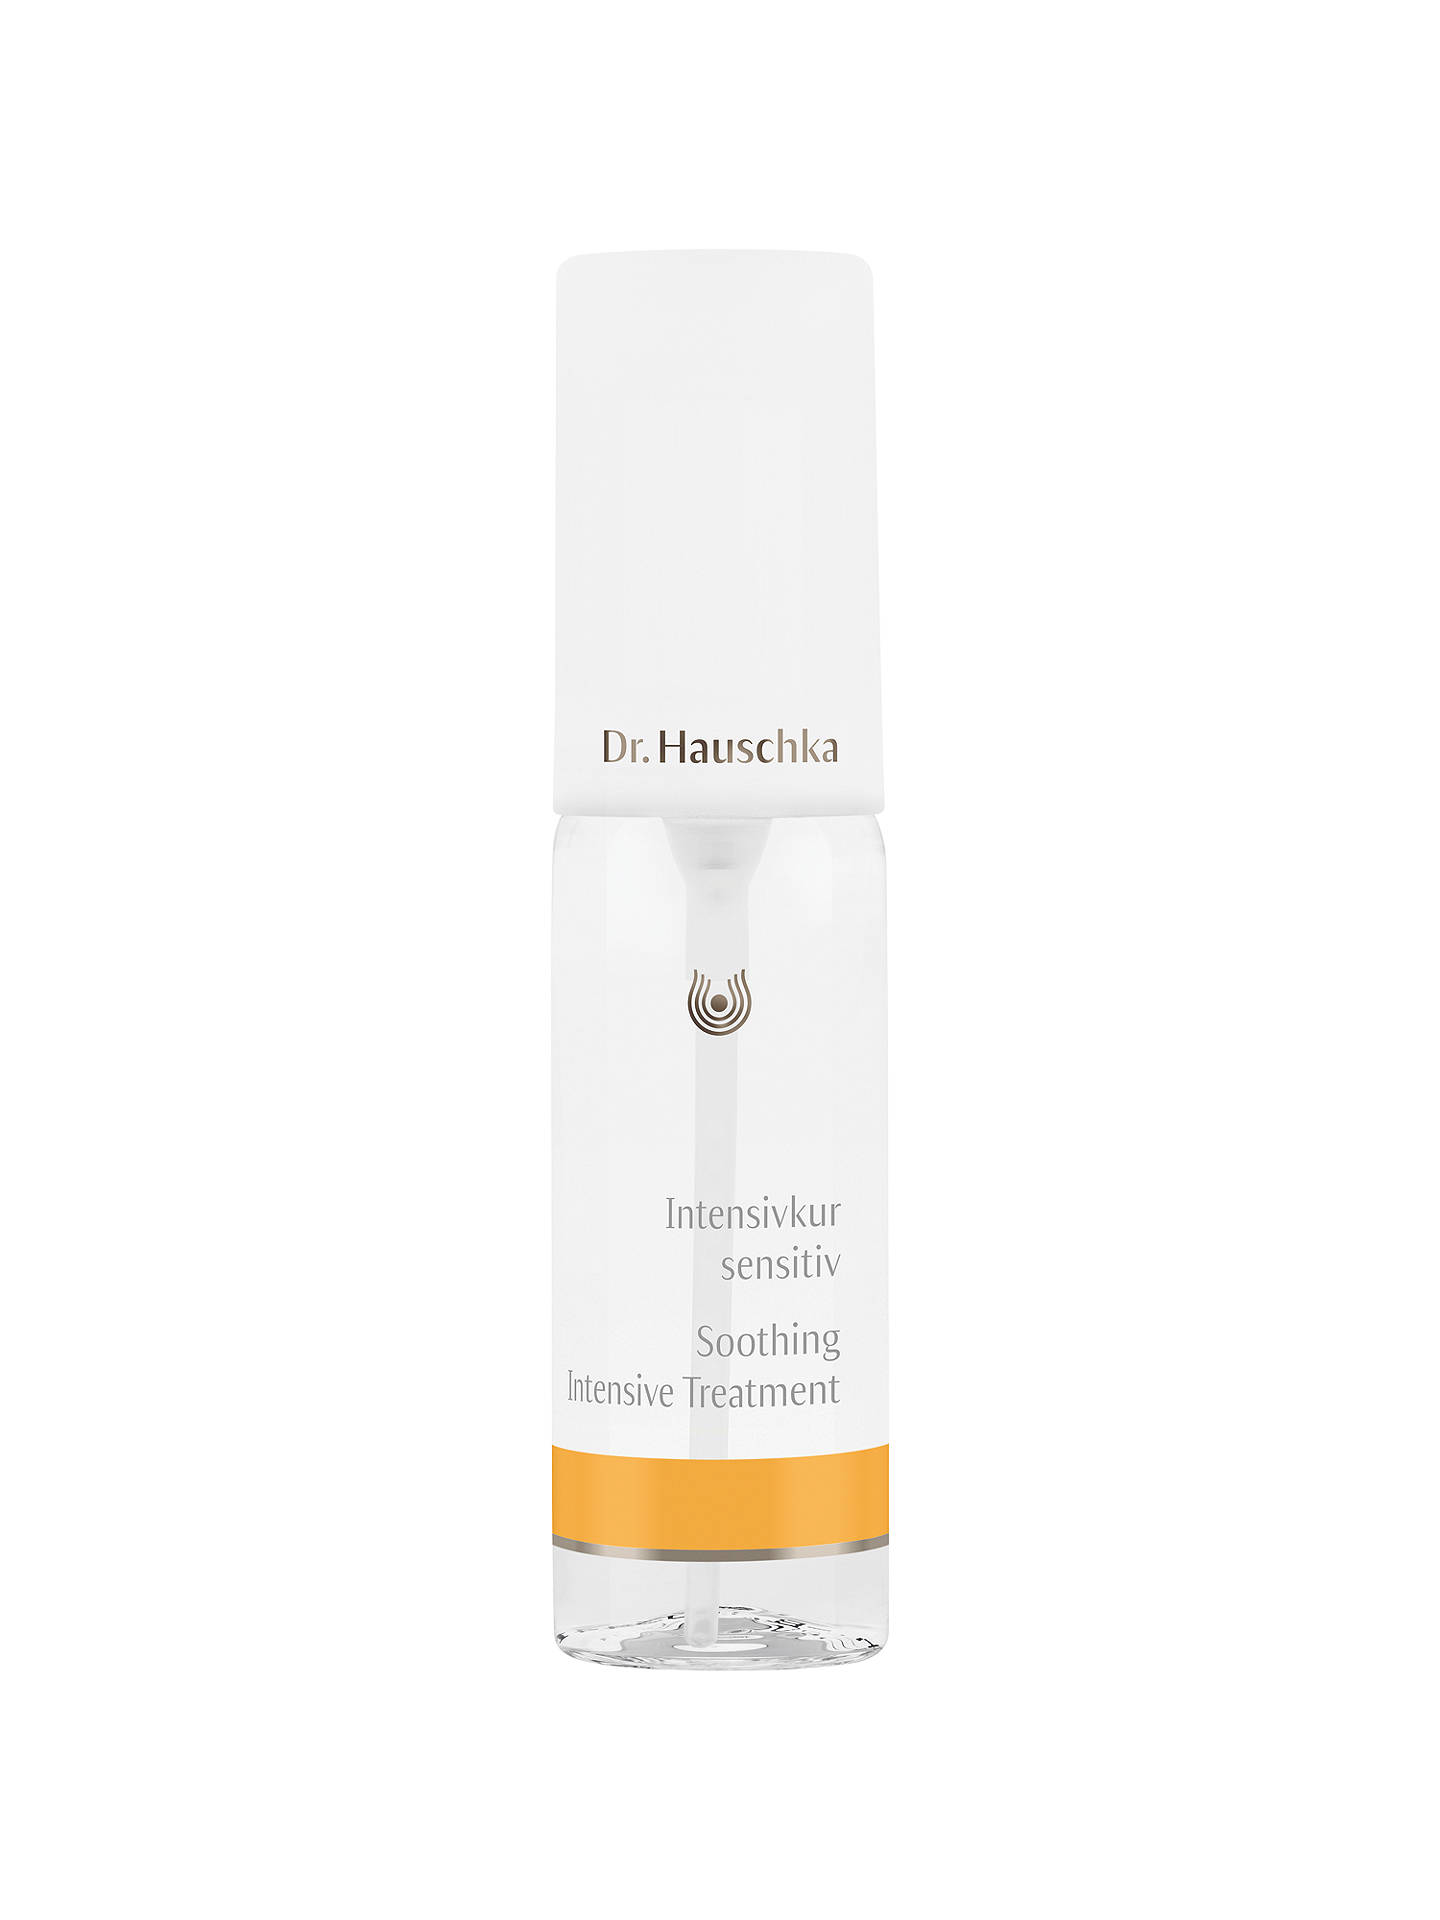 dr hauschka soothing intensive treatment